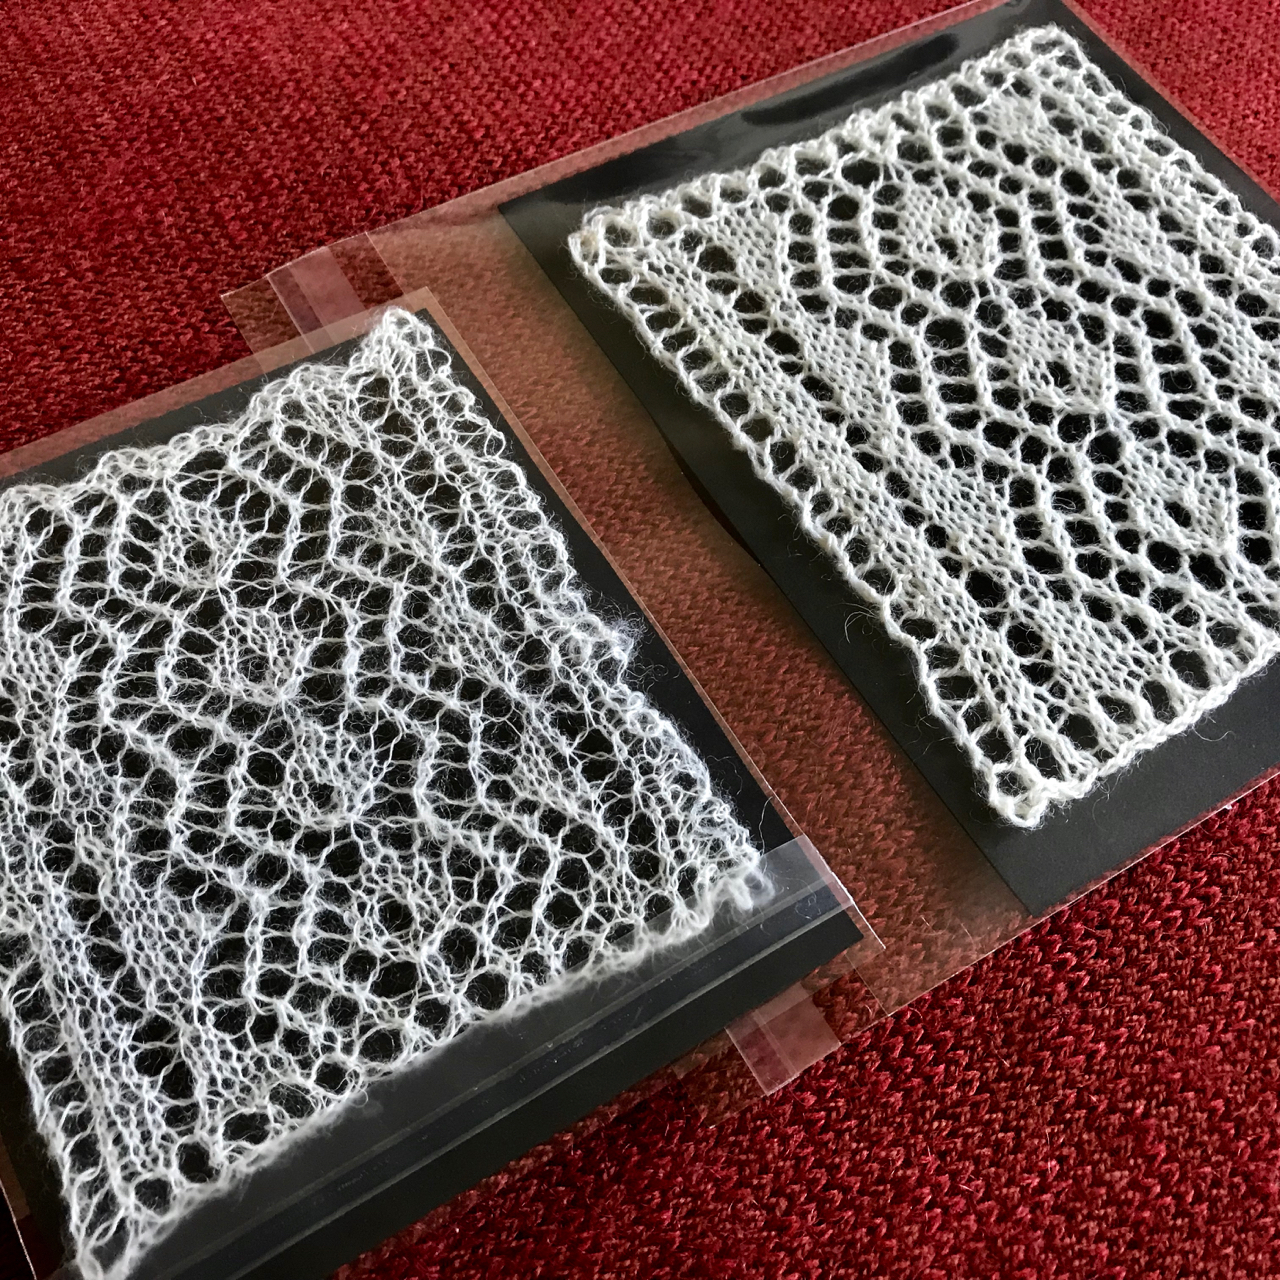 Historic Knitted Lace Project